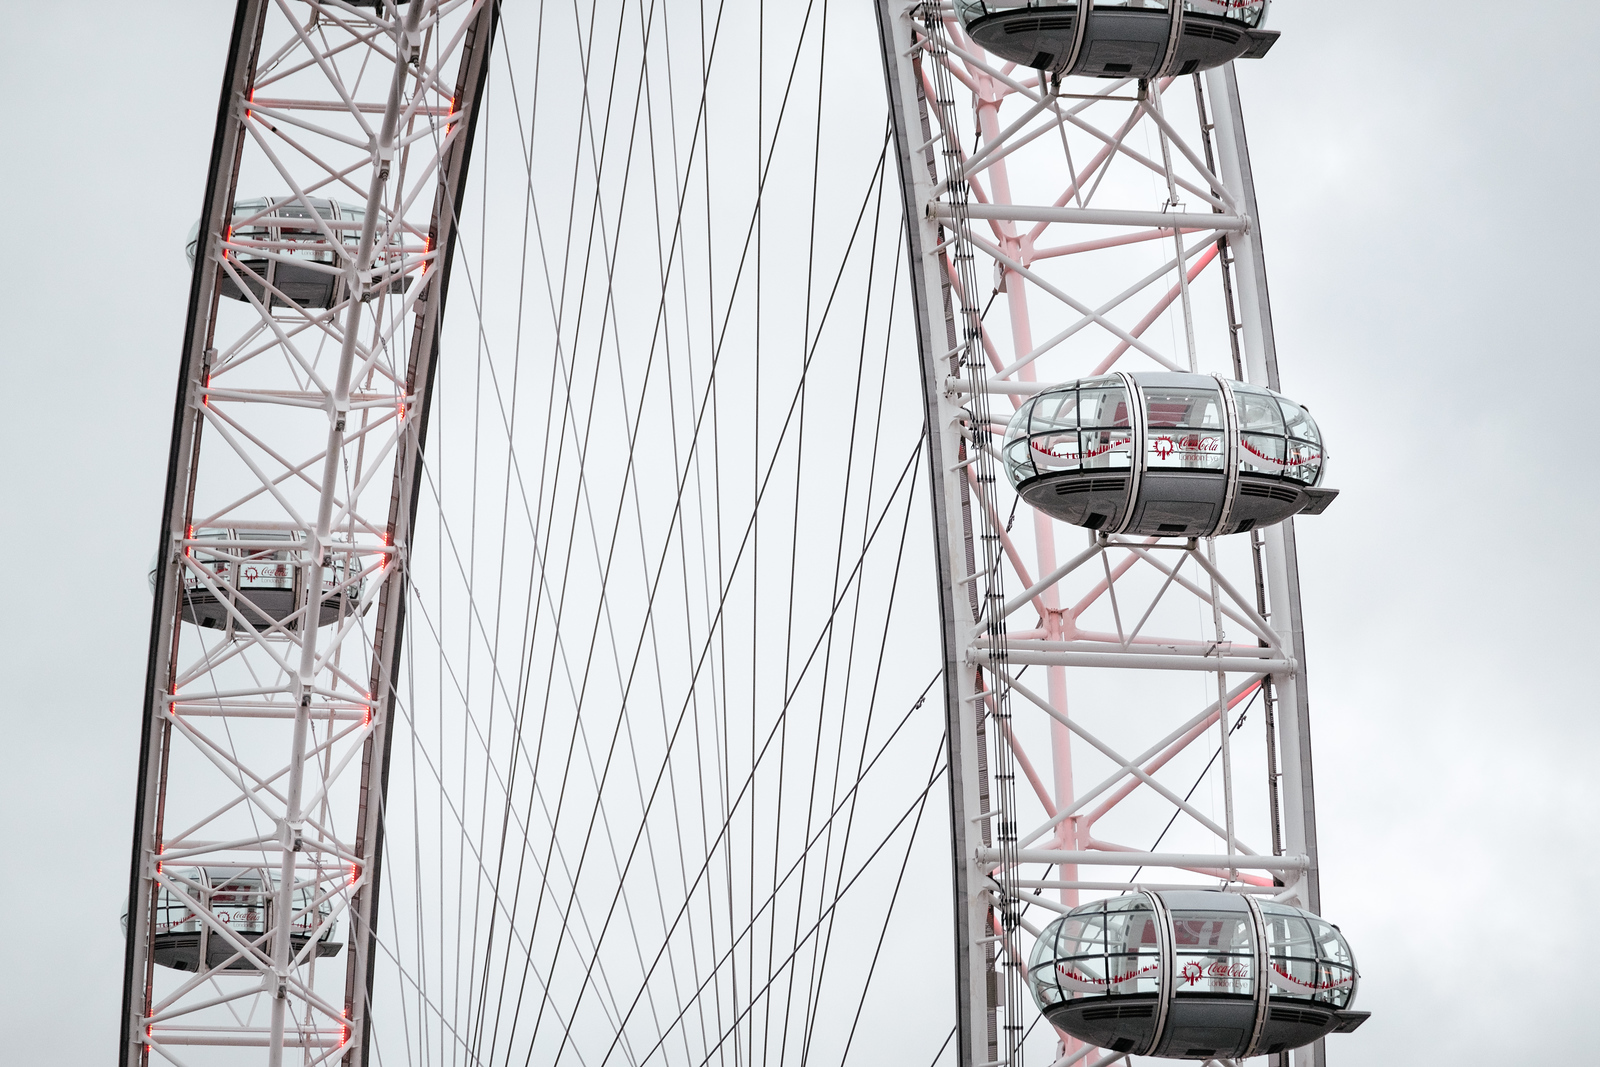 Detail of the London Eye